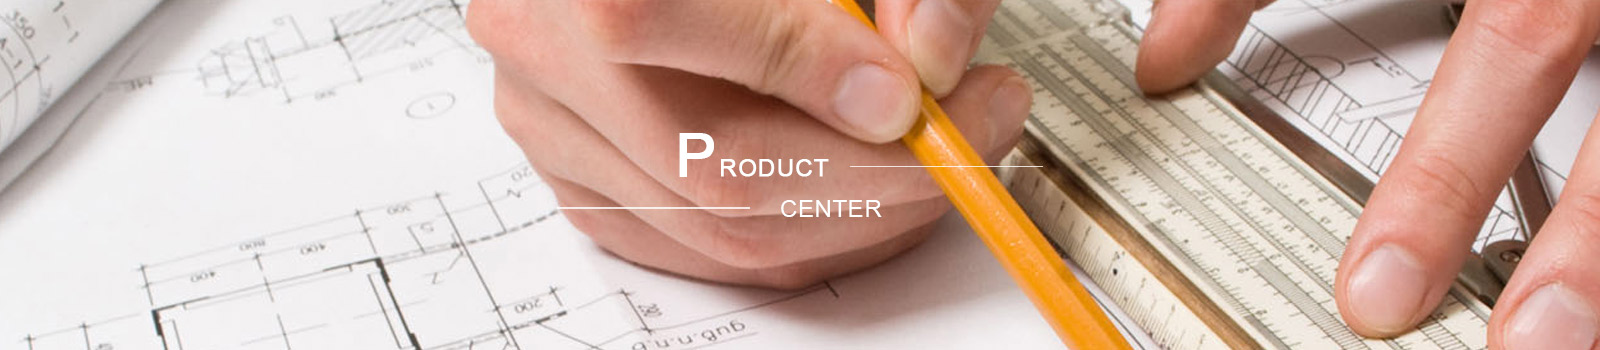 Product Center